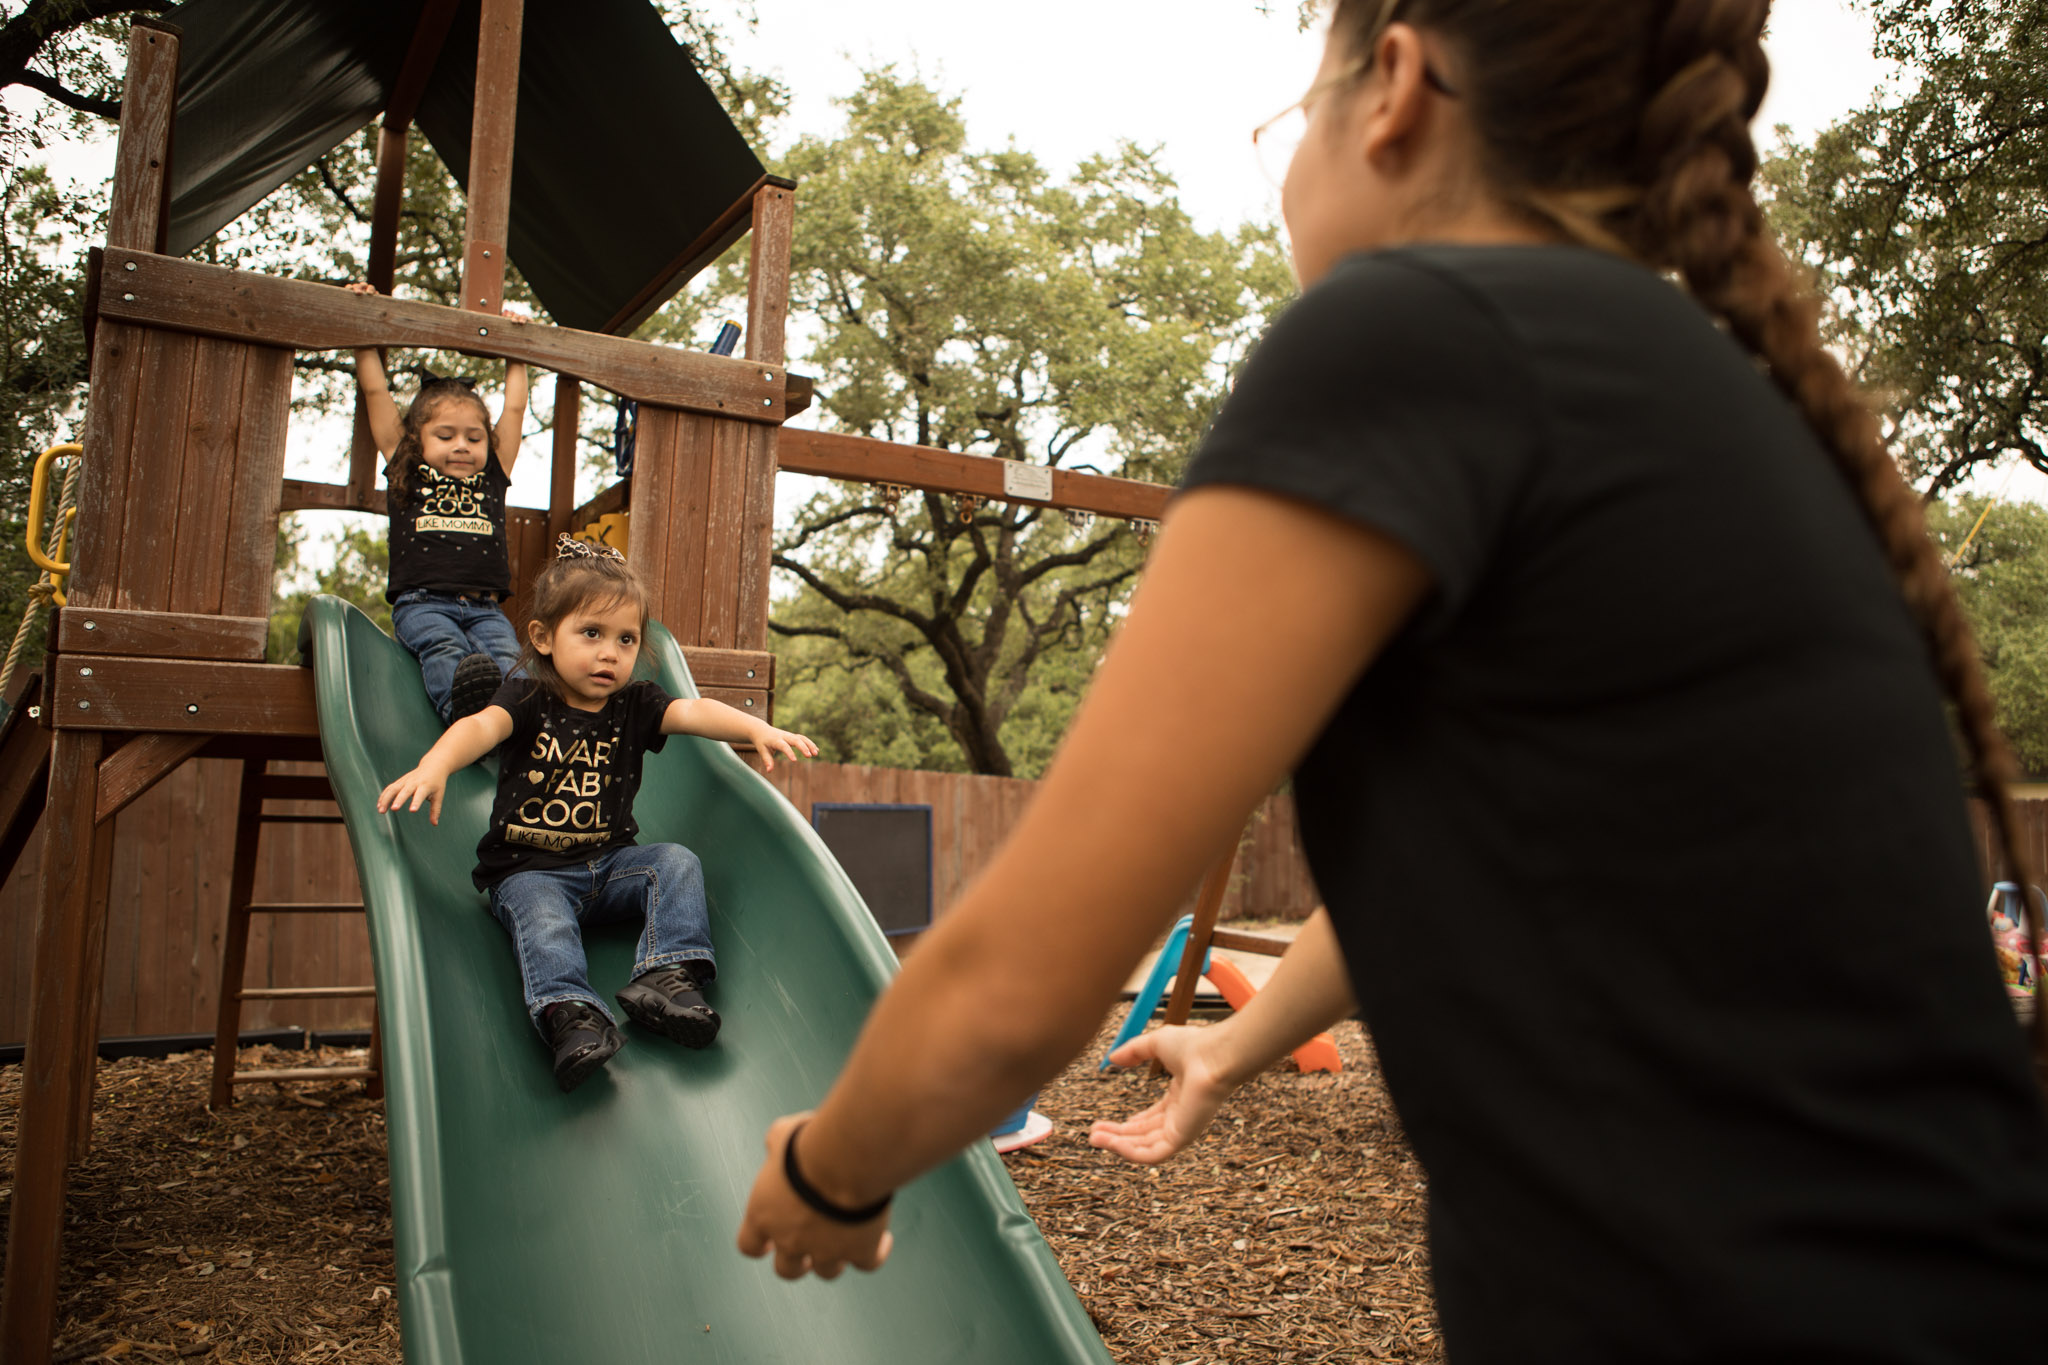 Briana Zapata, 17, (right) holds out her arms at the bottom of the slide to catch her daughters (from left) Natalie, 3, and Daniella, 1, at the SJRC Texas Pregnant Parenting Teen Program.